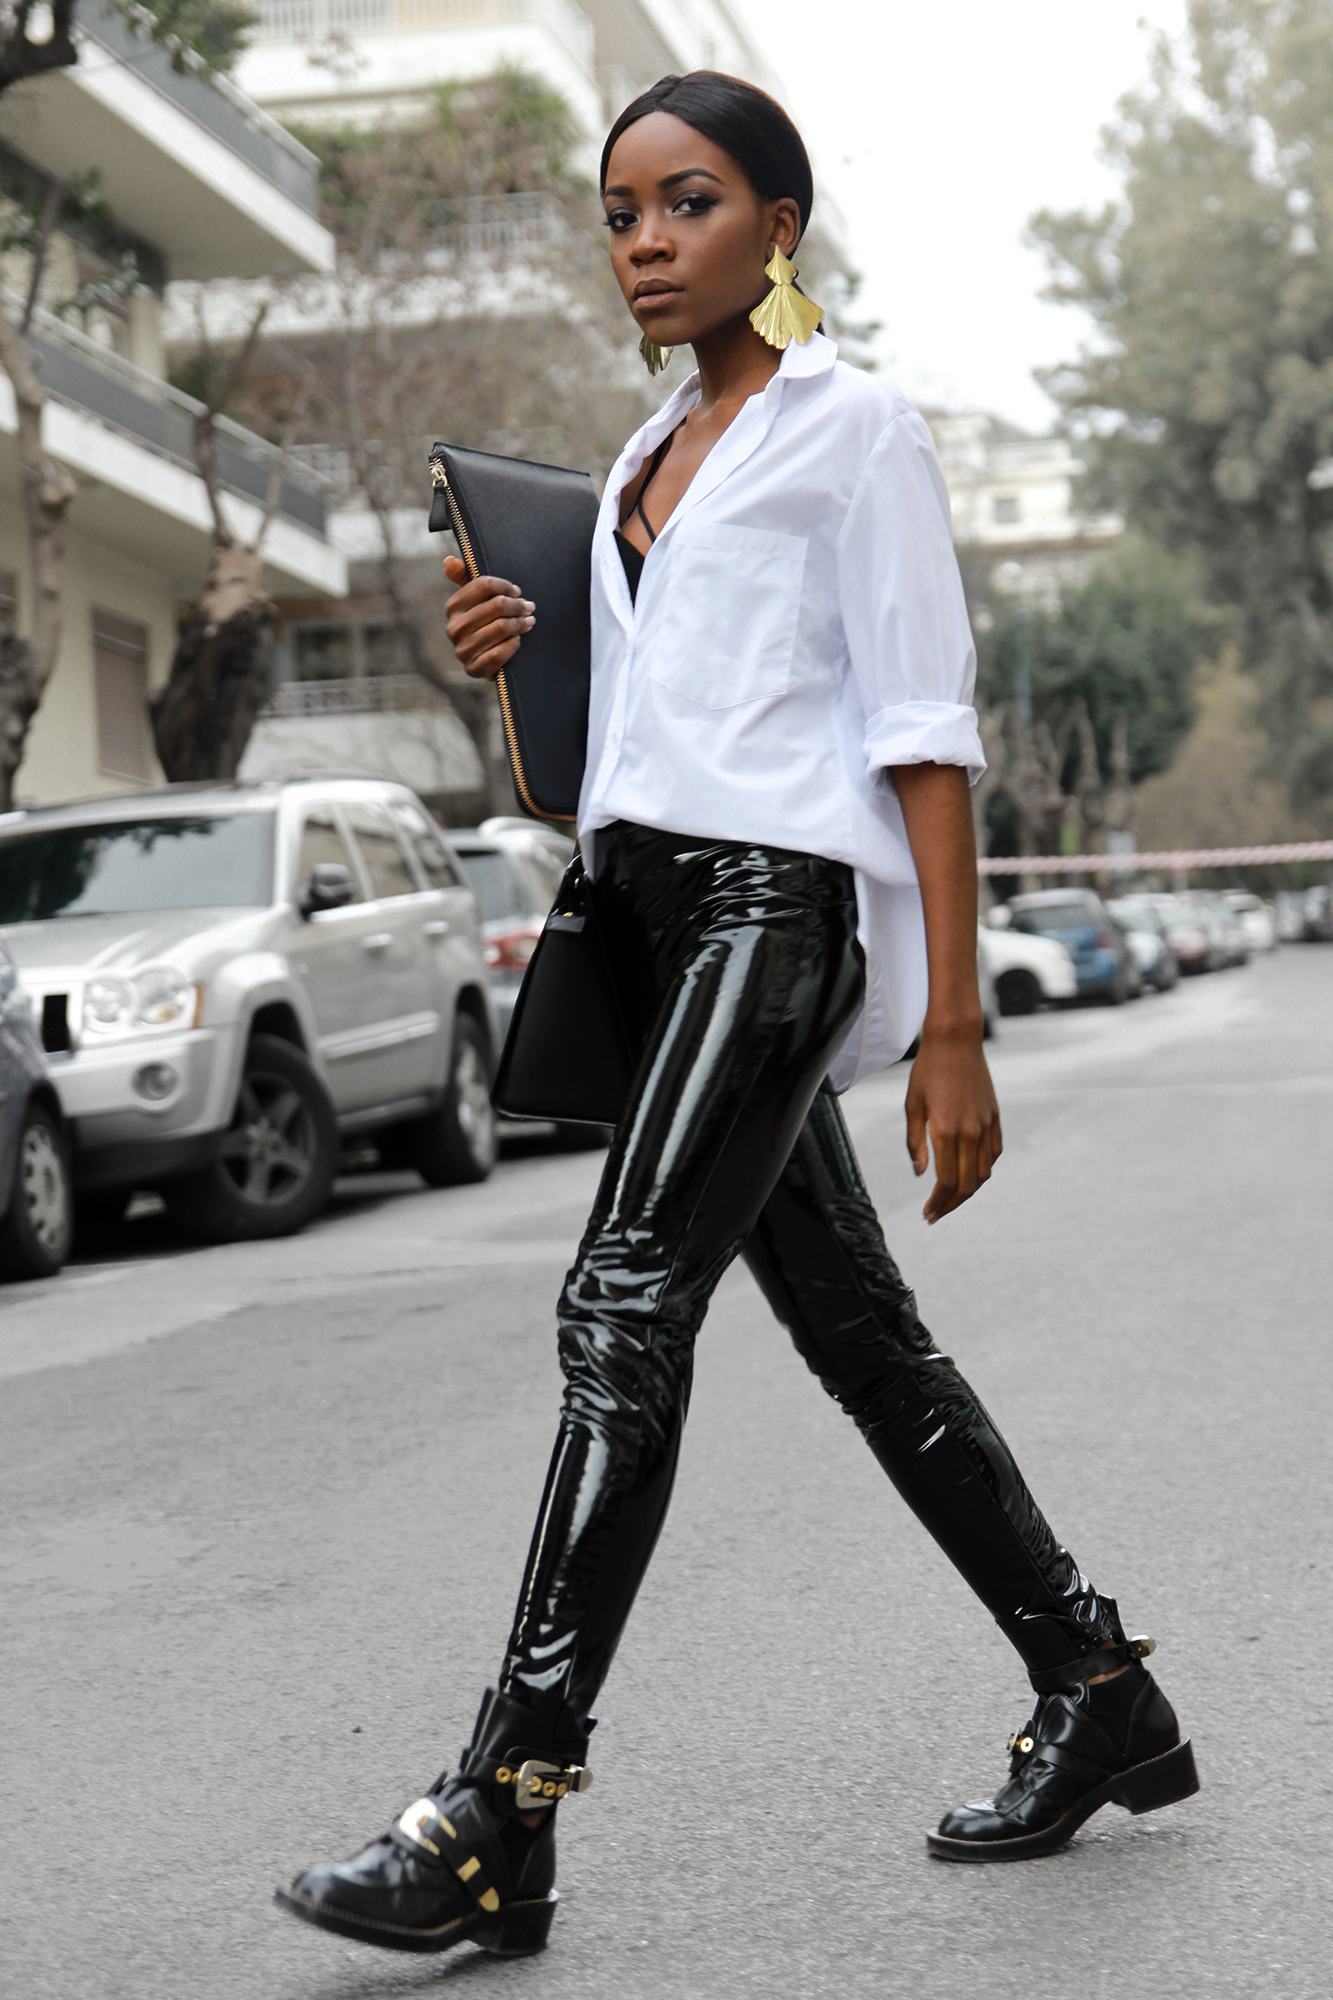 street-style-outfit